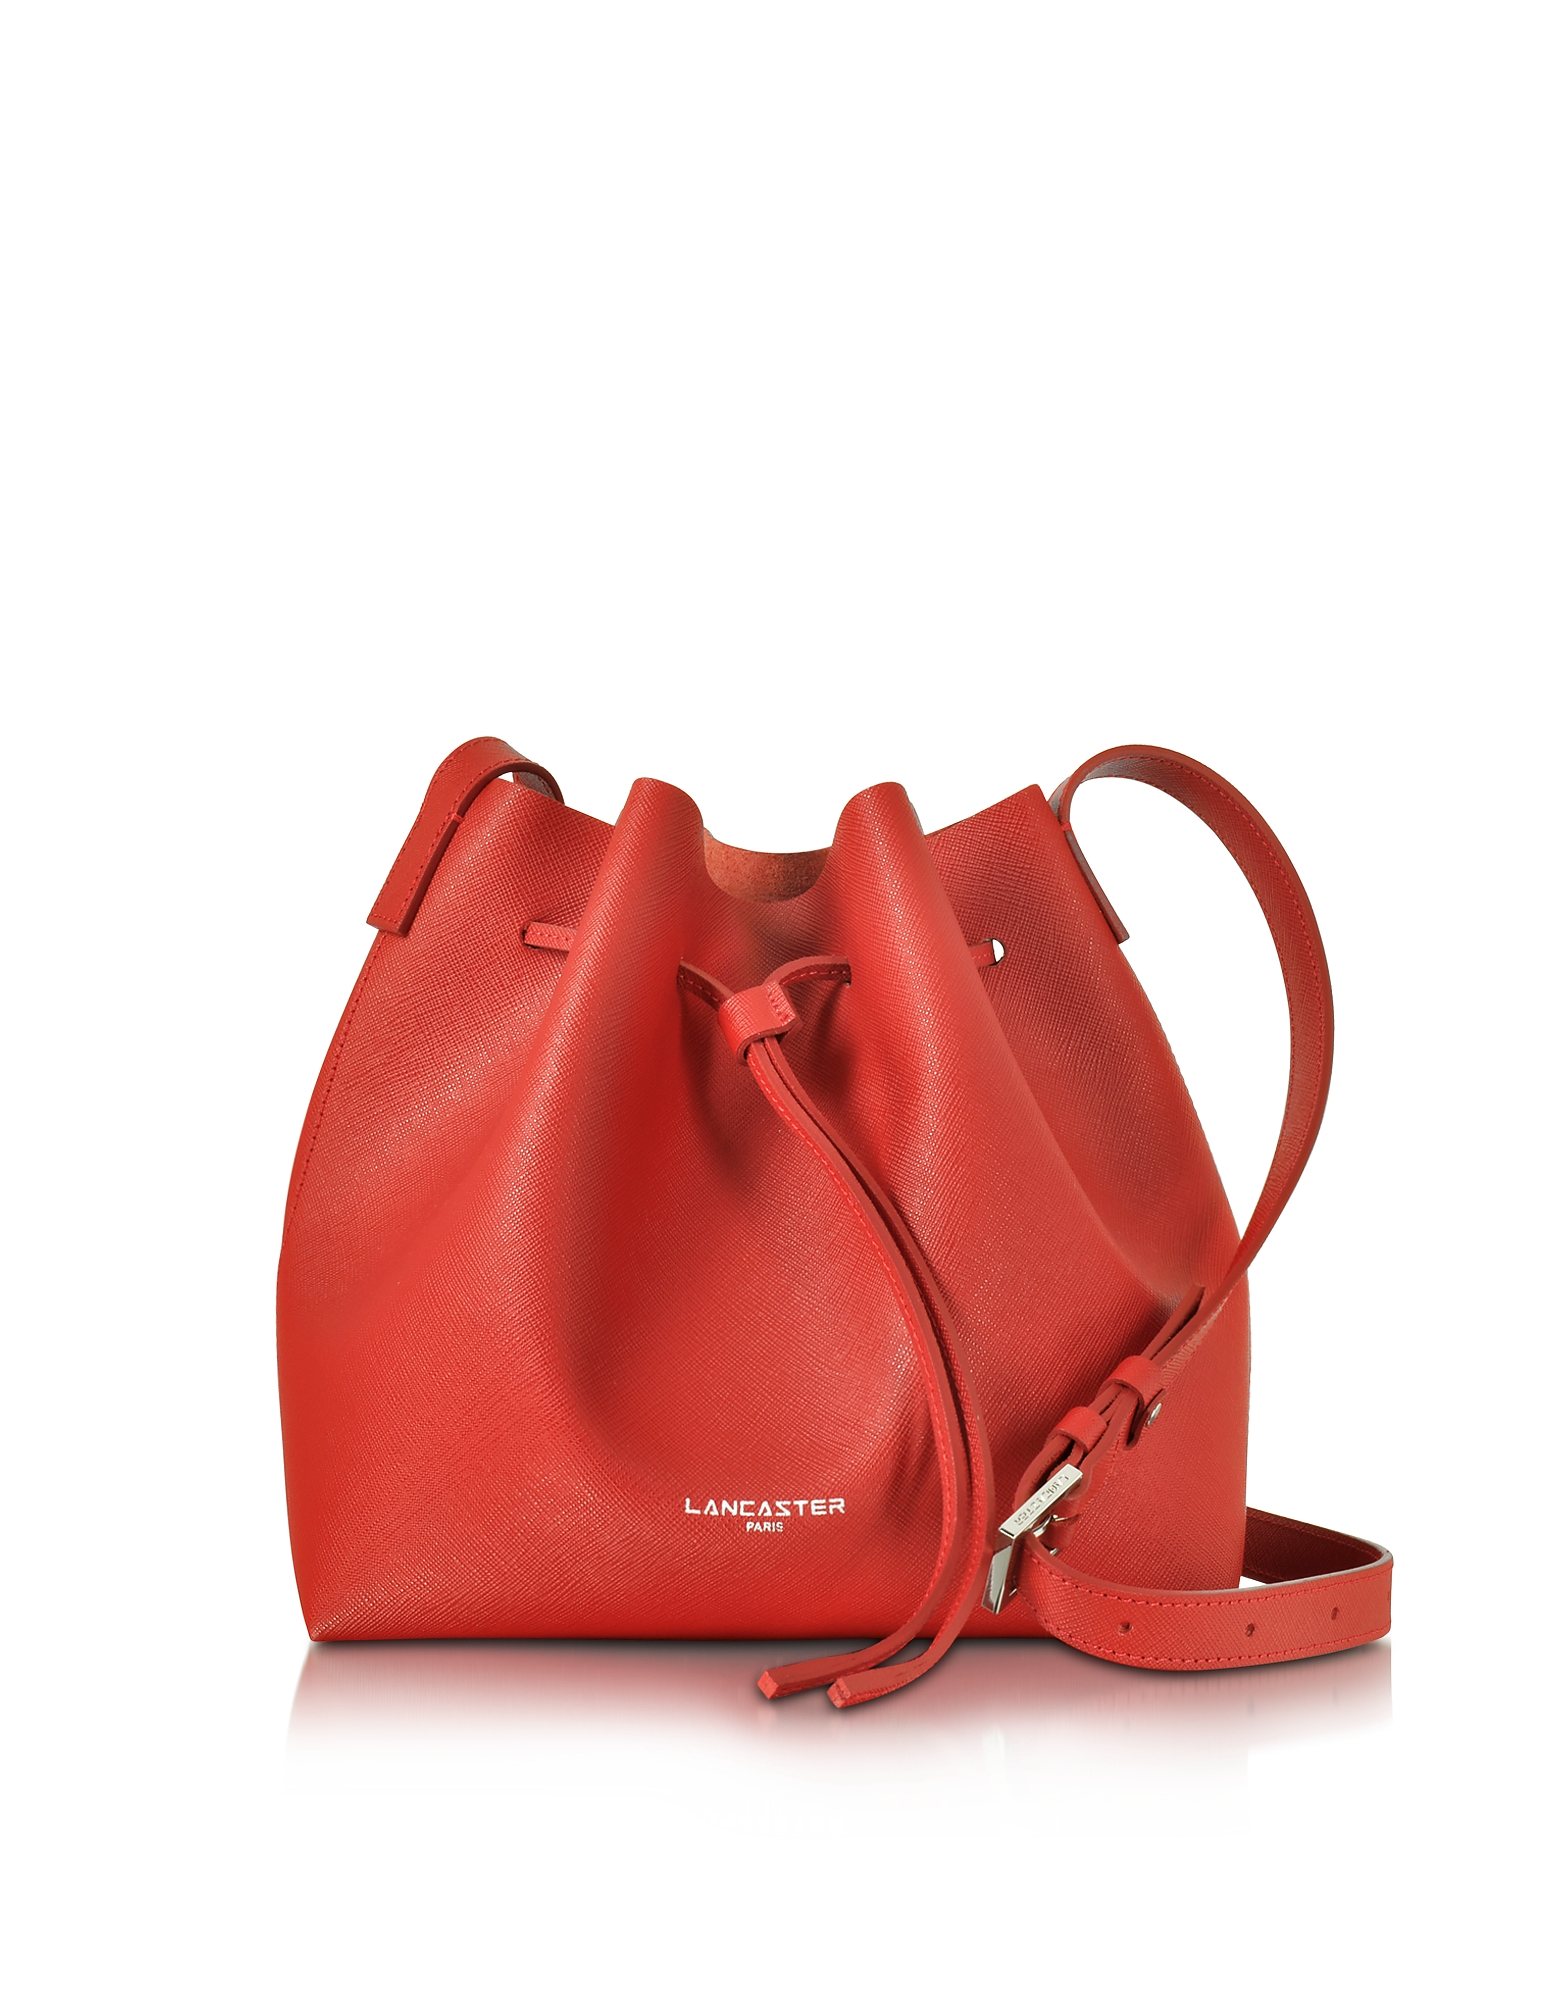 Lancaster Paris Handbags, Pur & Element Saffiano Leather Bucket Bag